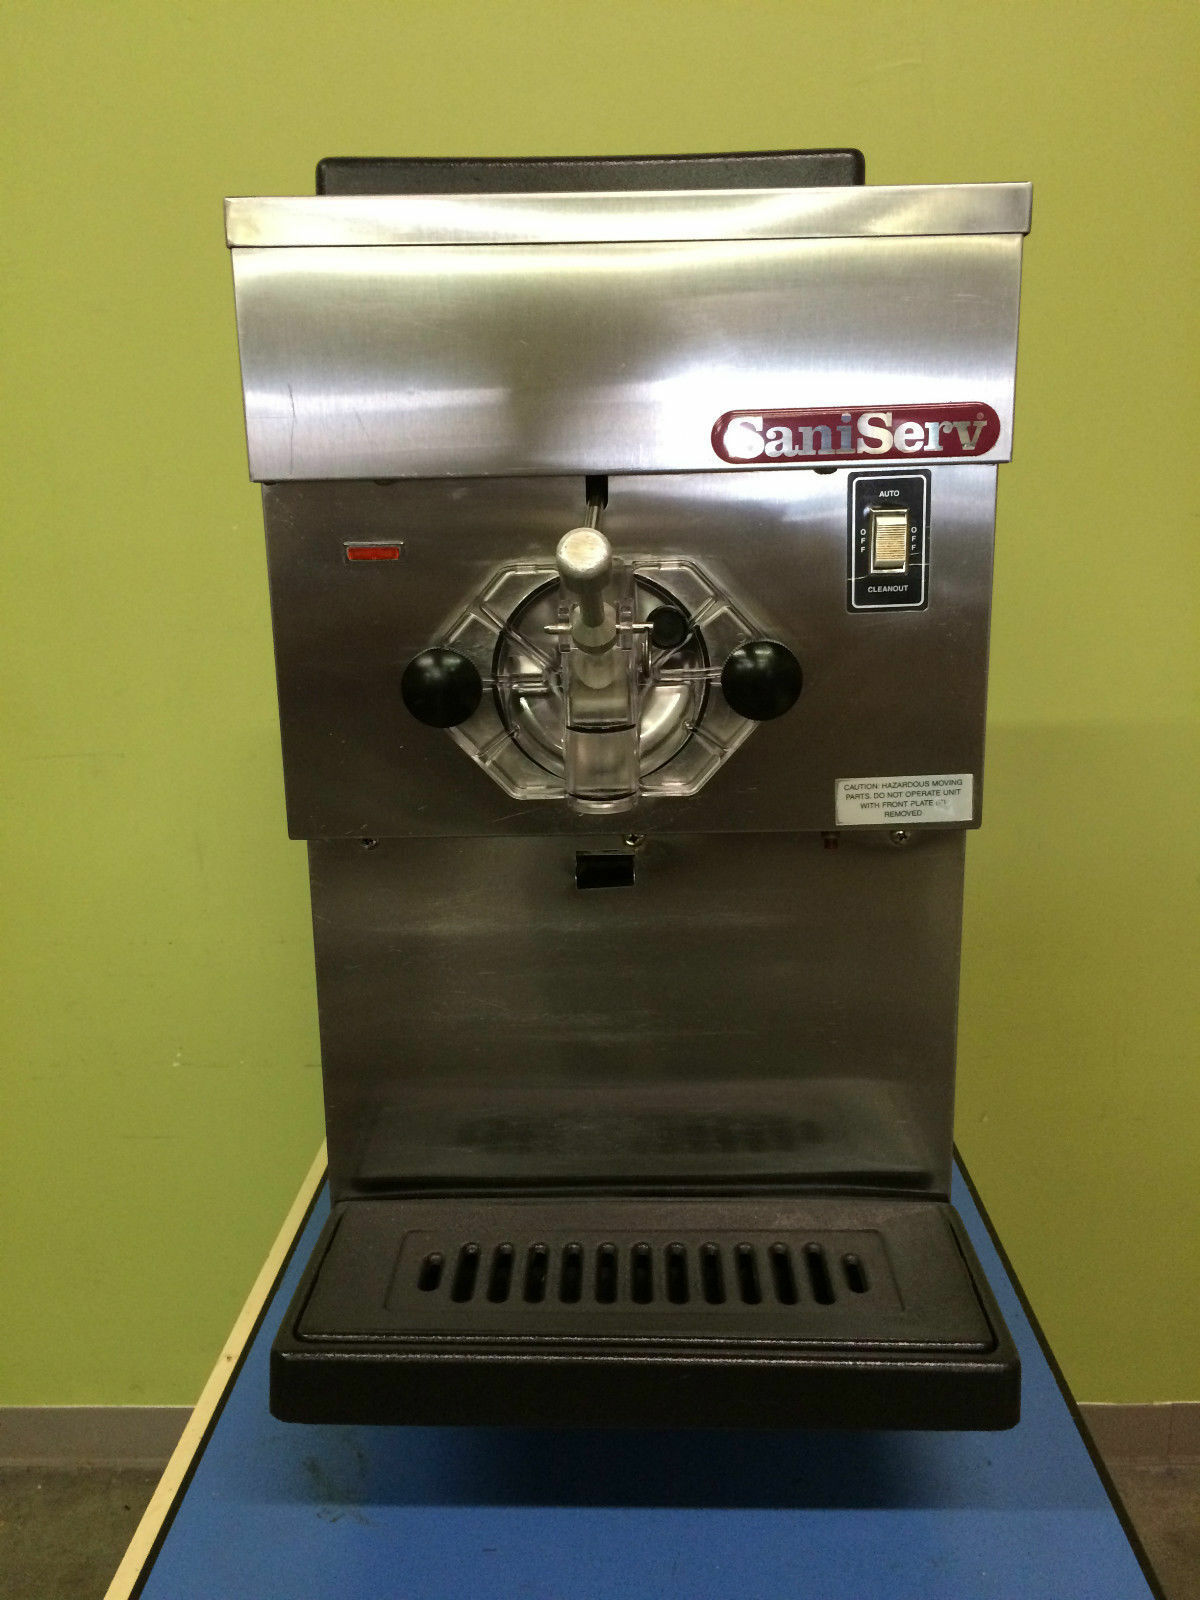 SaniServ Sani Serv A4011N Frozen Drink Margarita Machine WORKS GREAT!